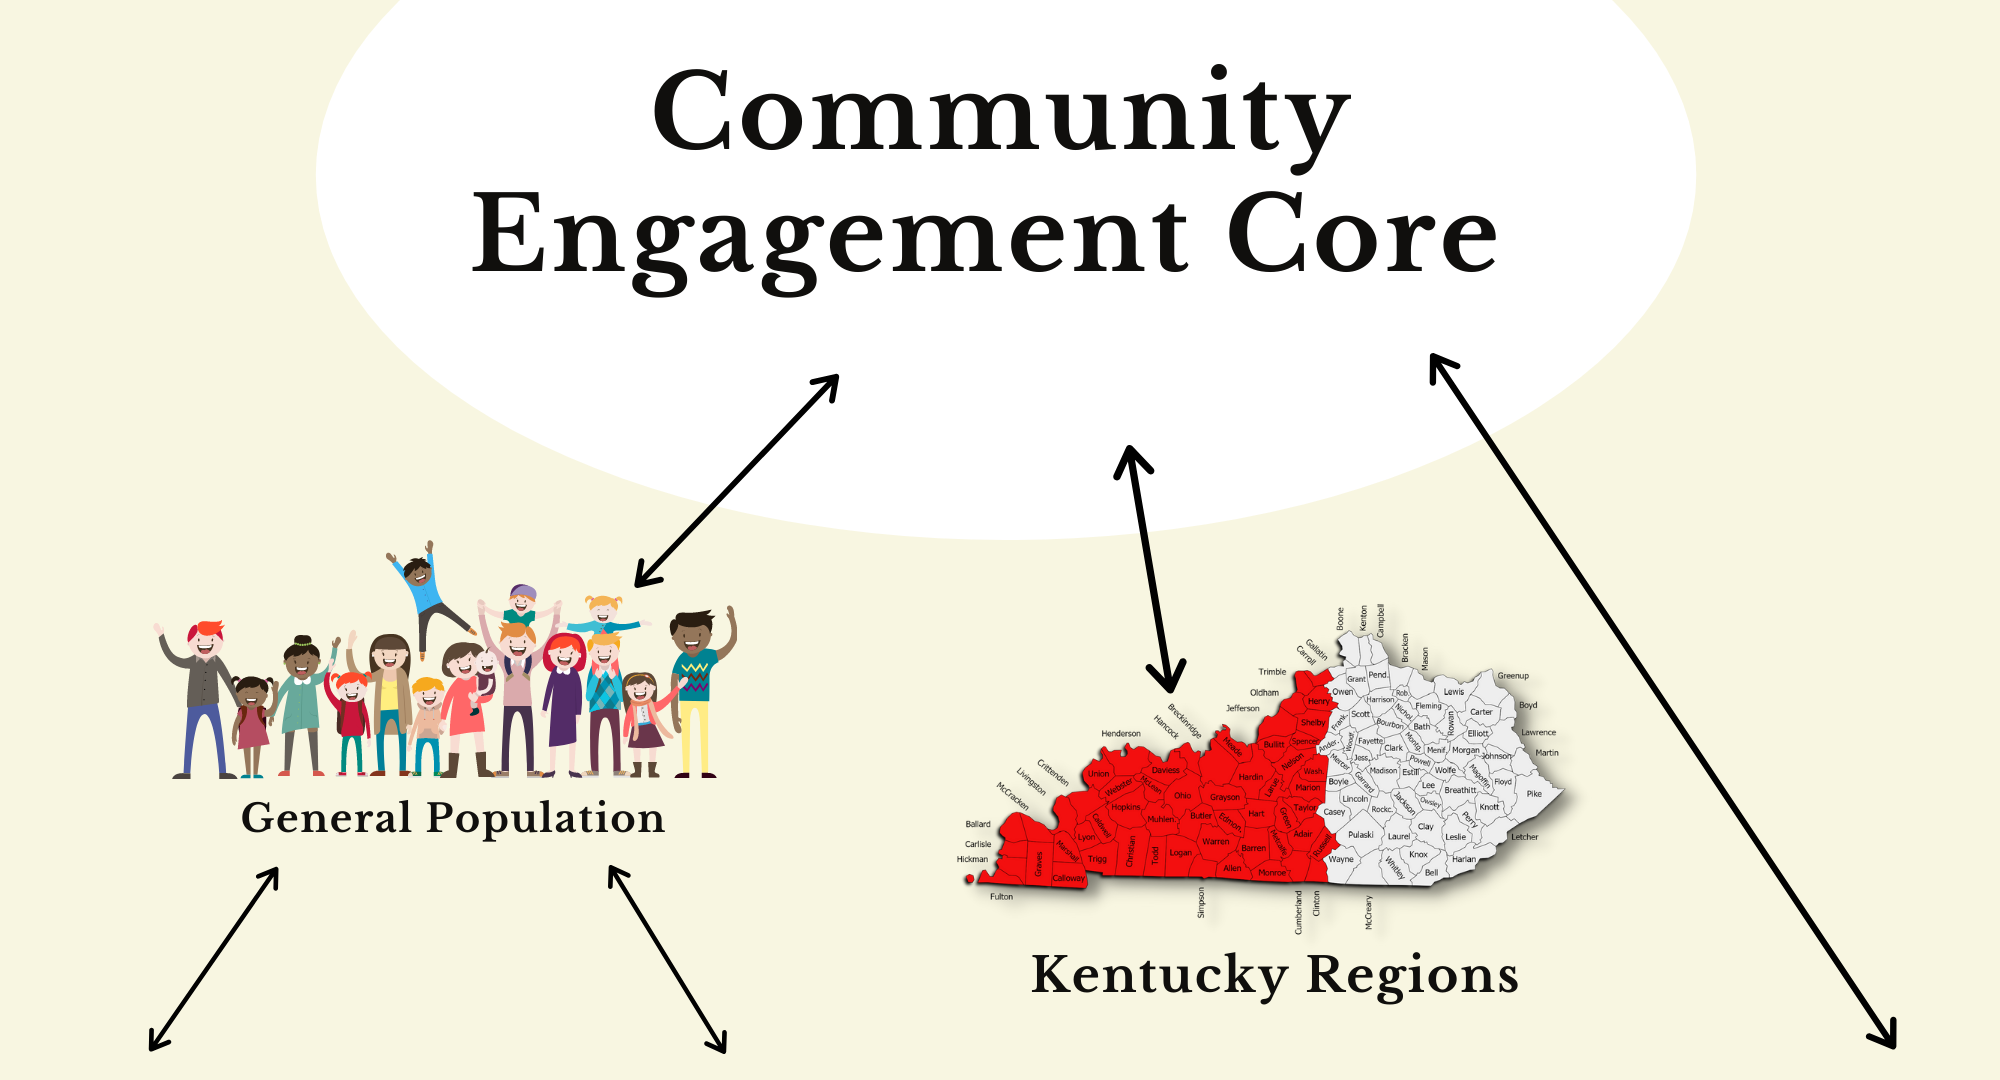 A diagram with CEC at the top, in the next chain, is the general population and Kentucky regions pointing to 3 links titled Health Care Providers, Youth, and Scientists.